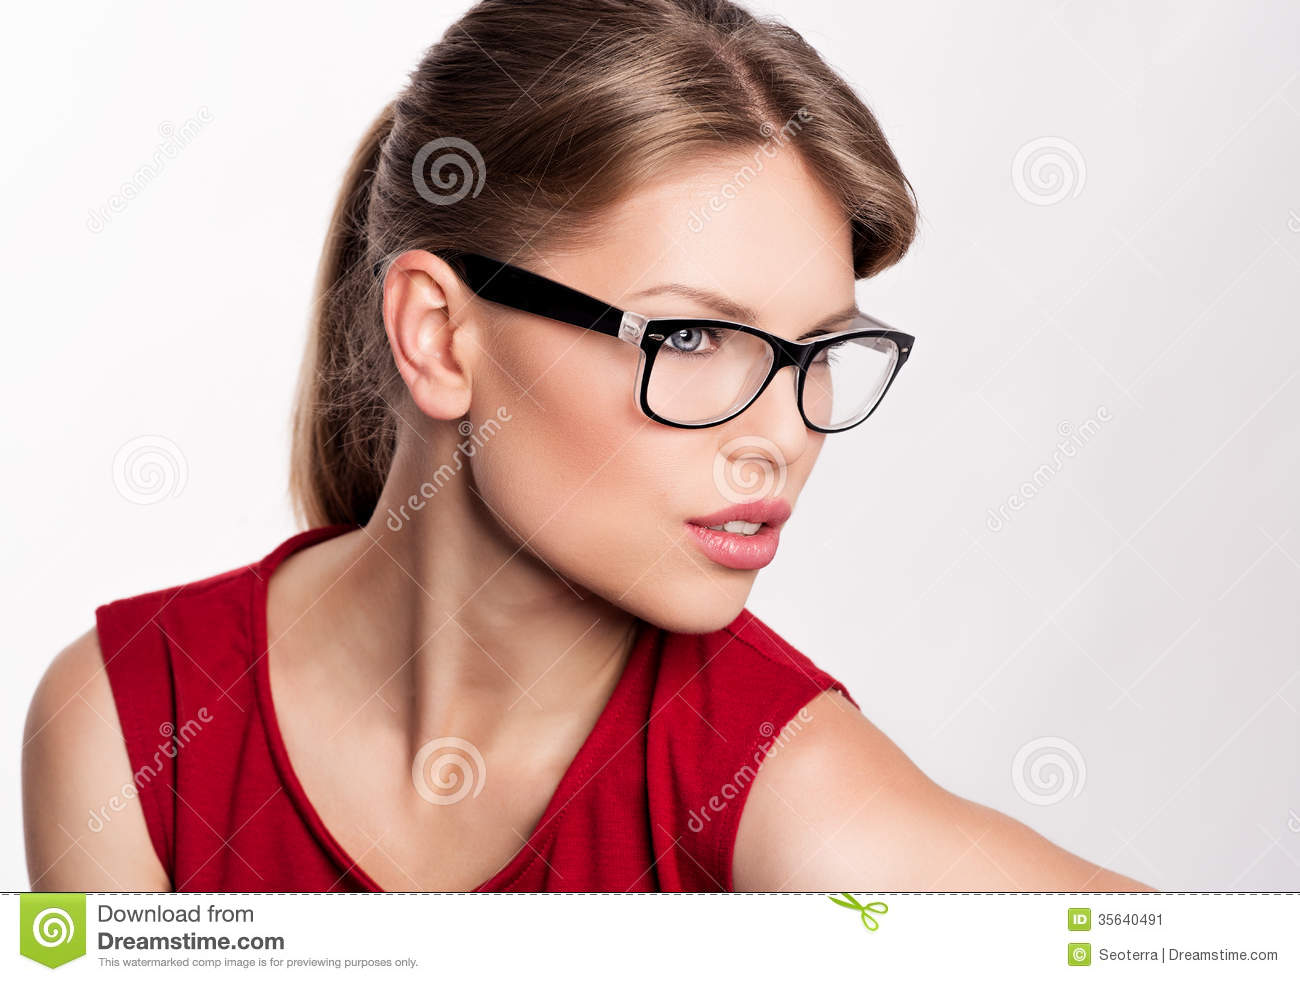 fashion optical glasses  Fashion Woman In Eyeglasses Stock Image - Image: 35640491